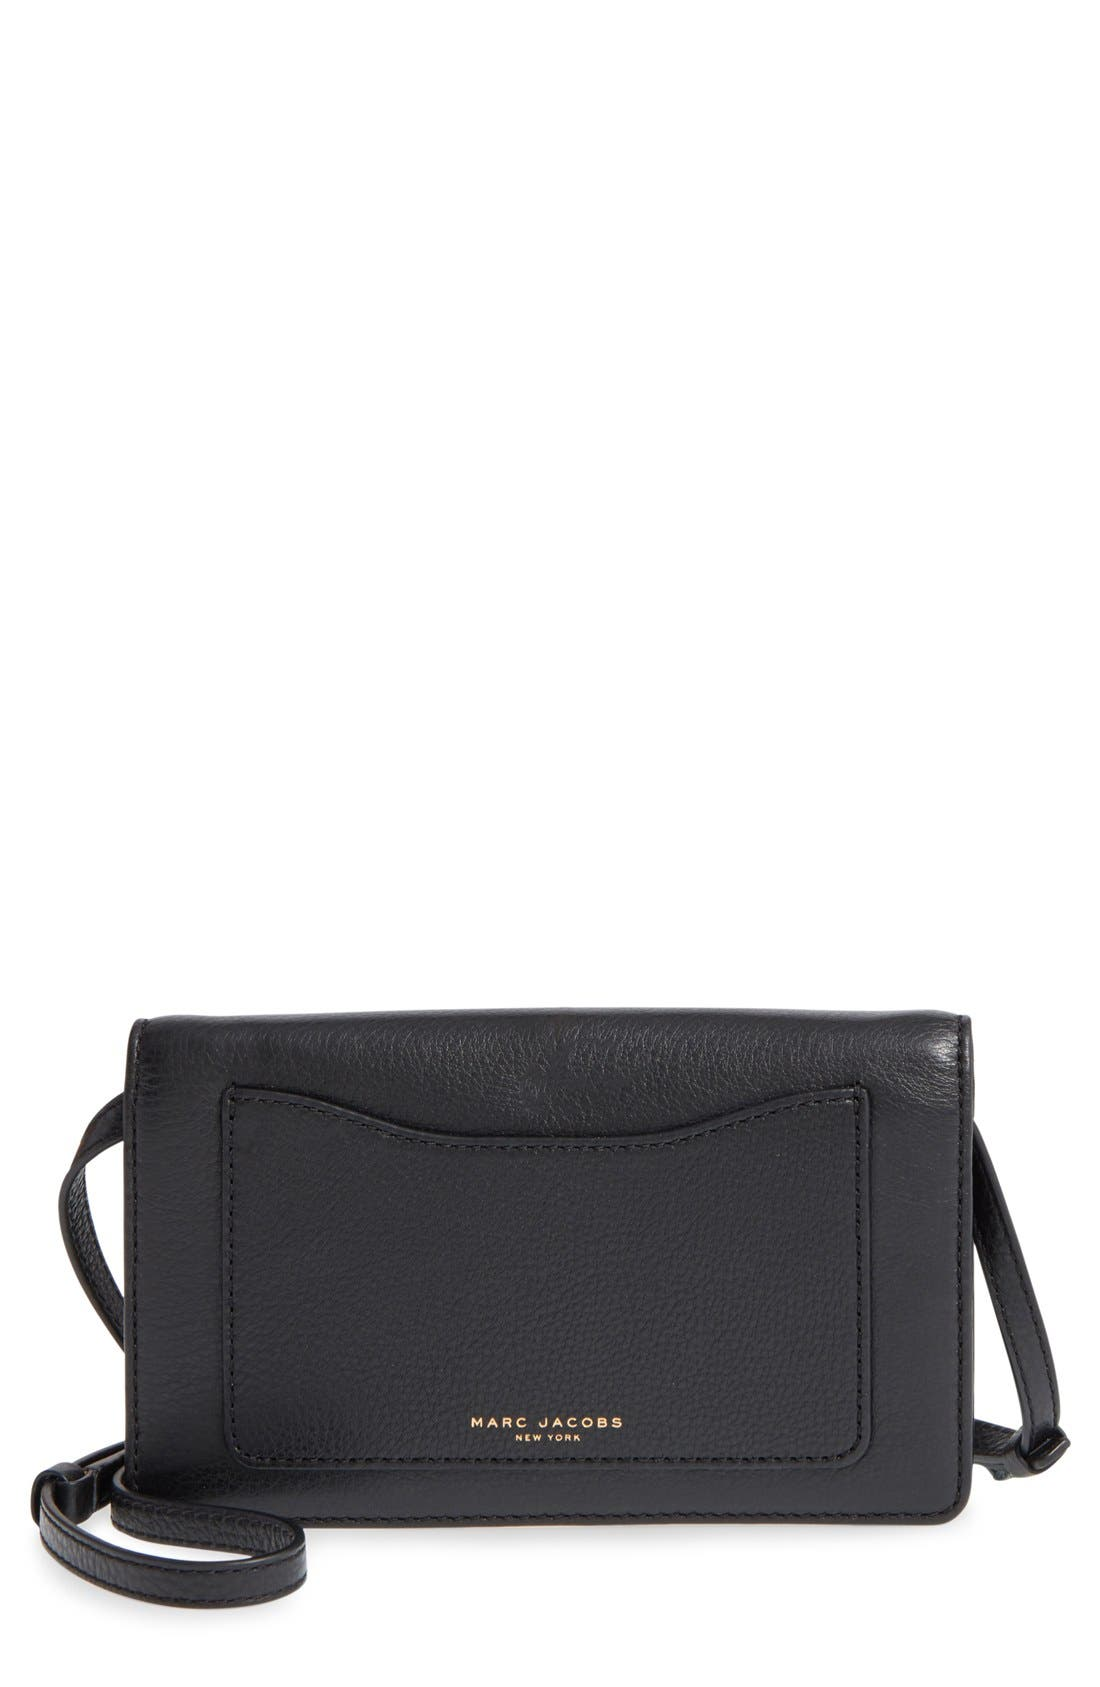 MARC JACOBS 'Recruit' Pebbled Leather Crossbody Wallet